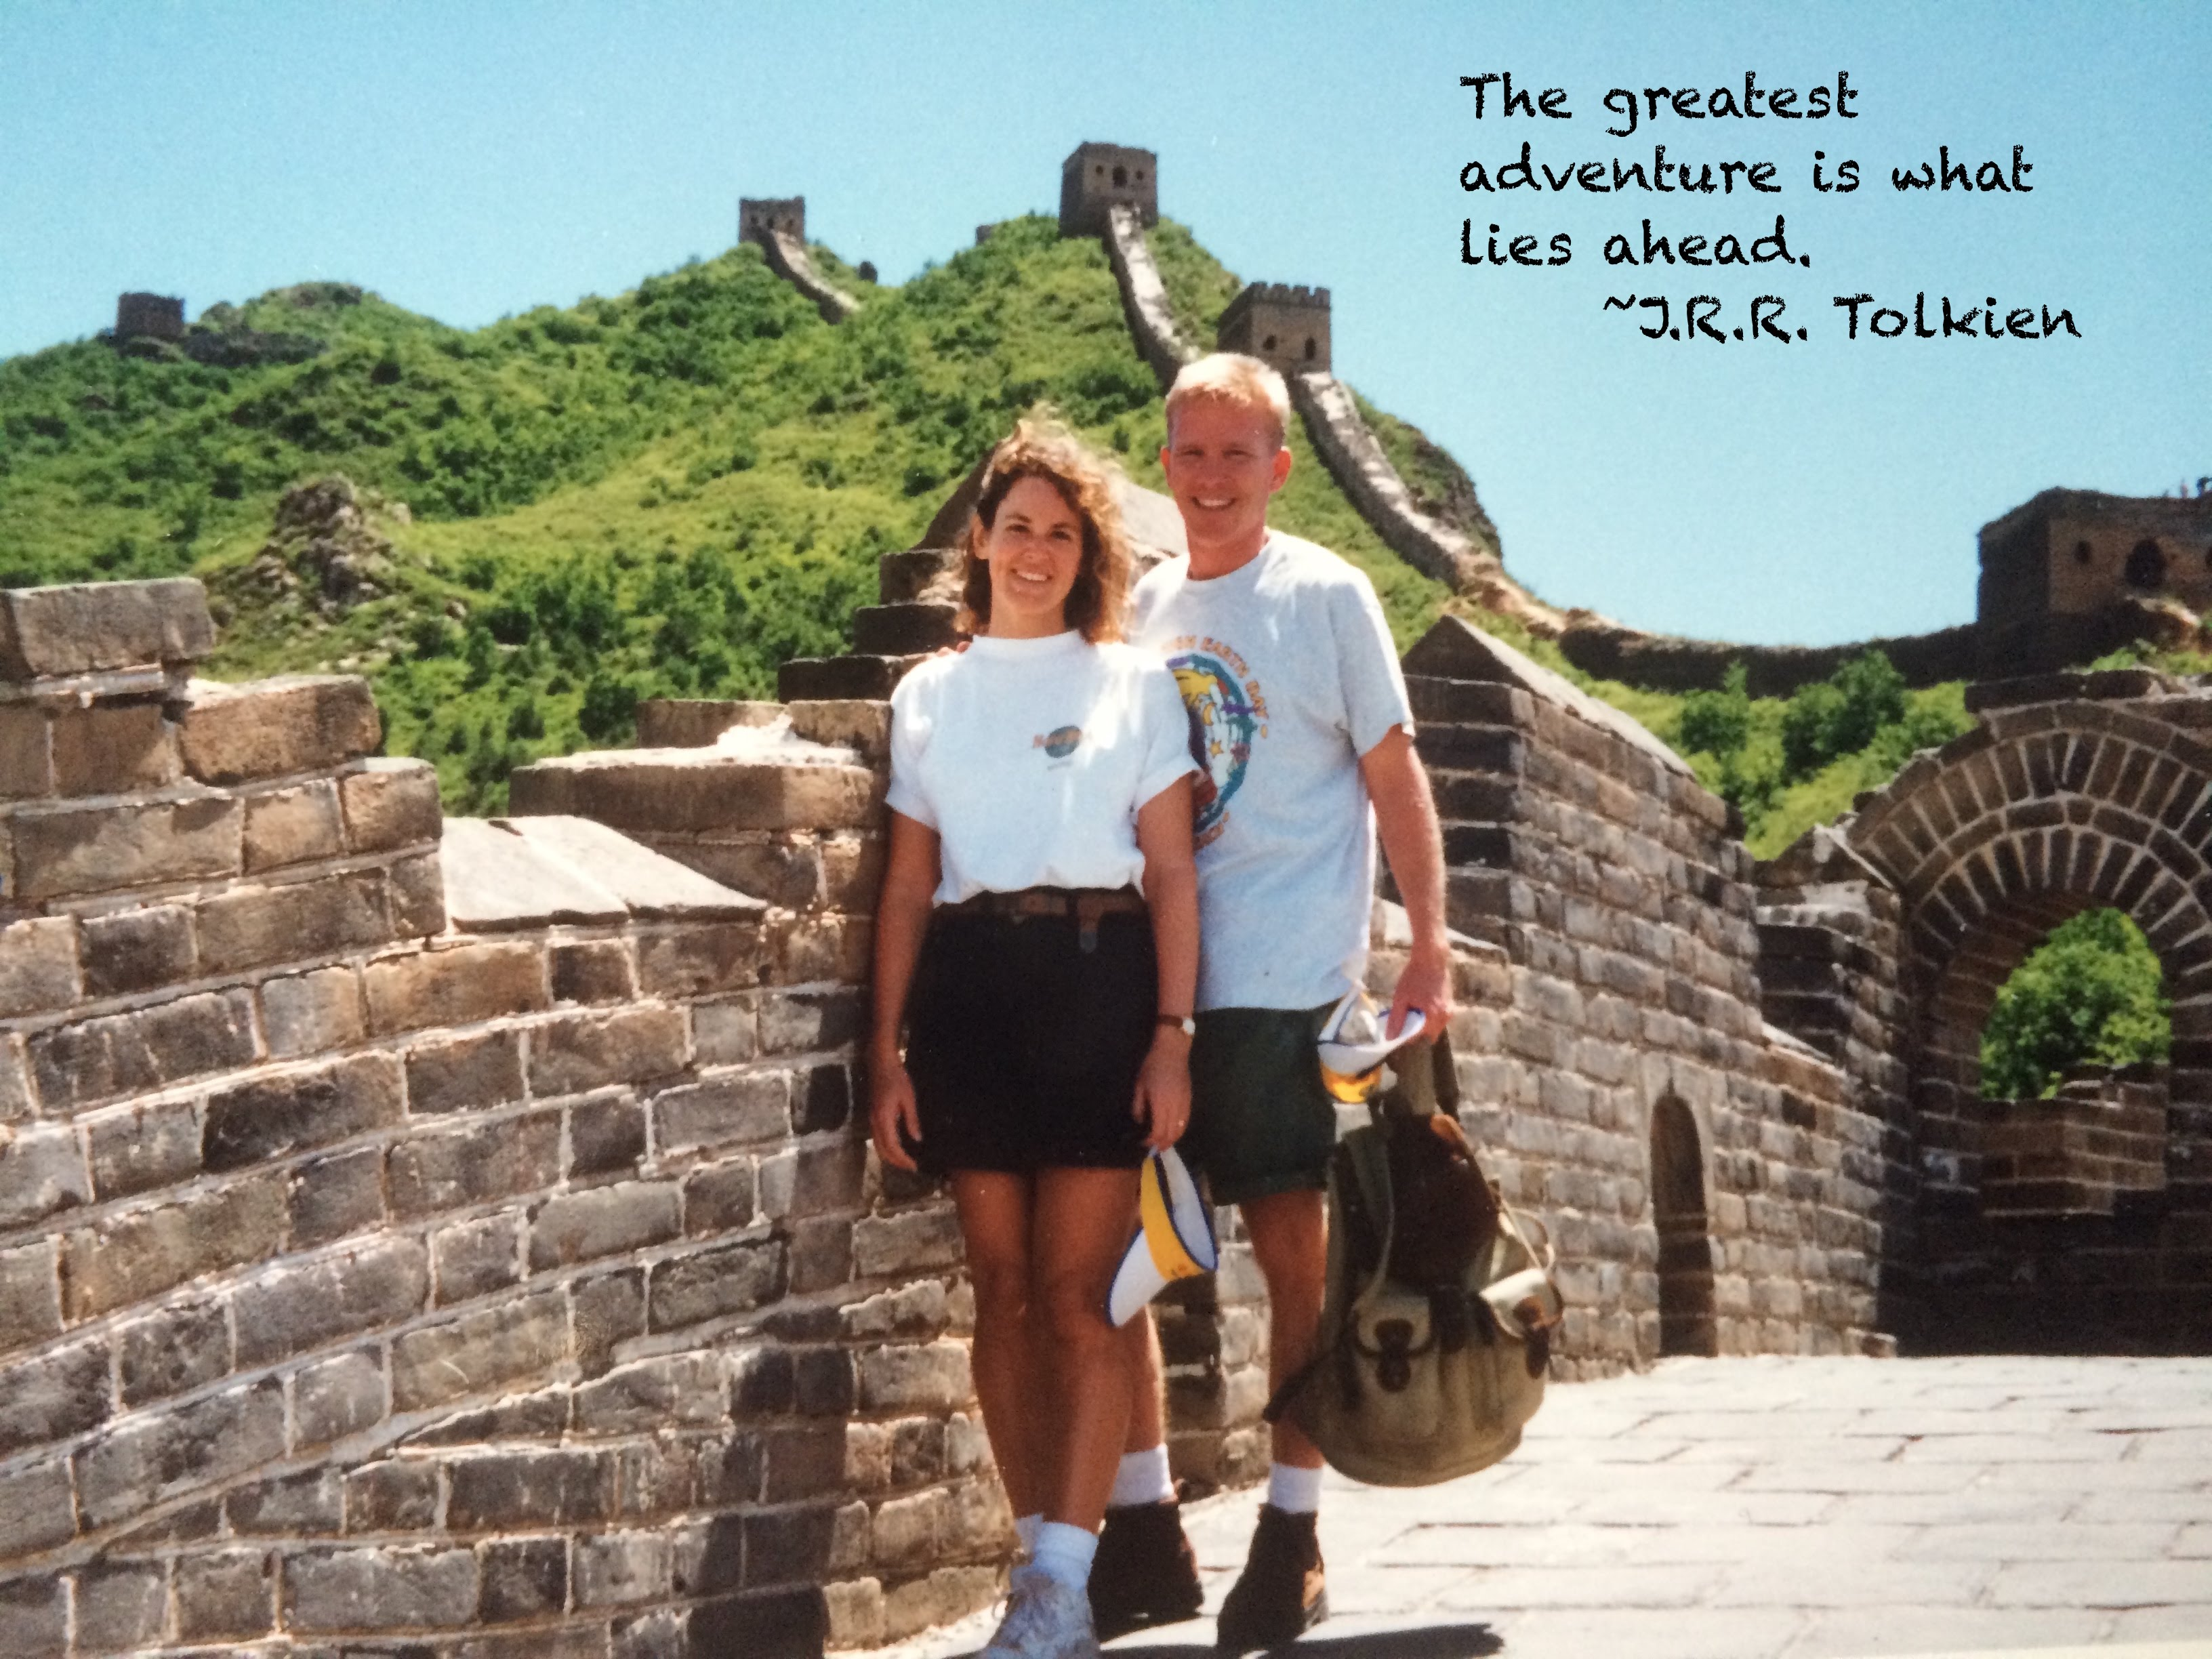 Mike and Carol on the Great Wall